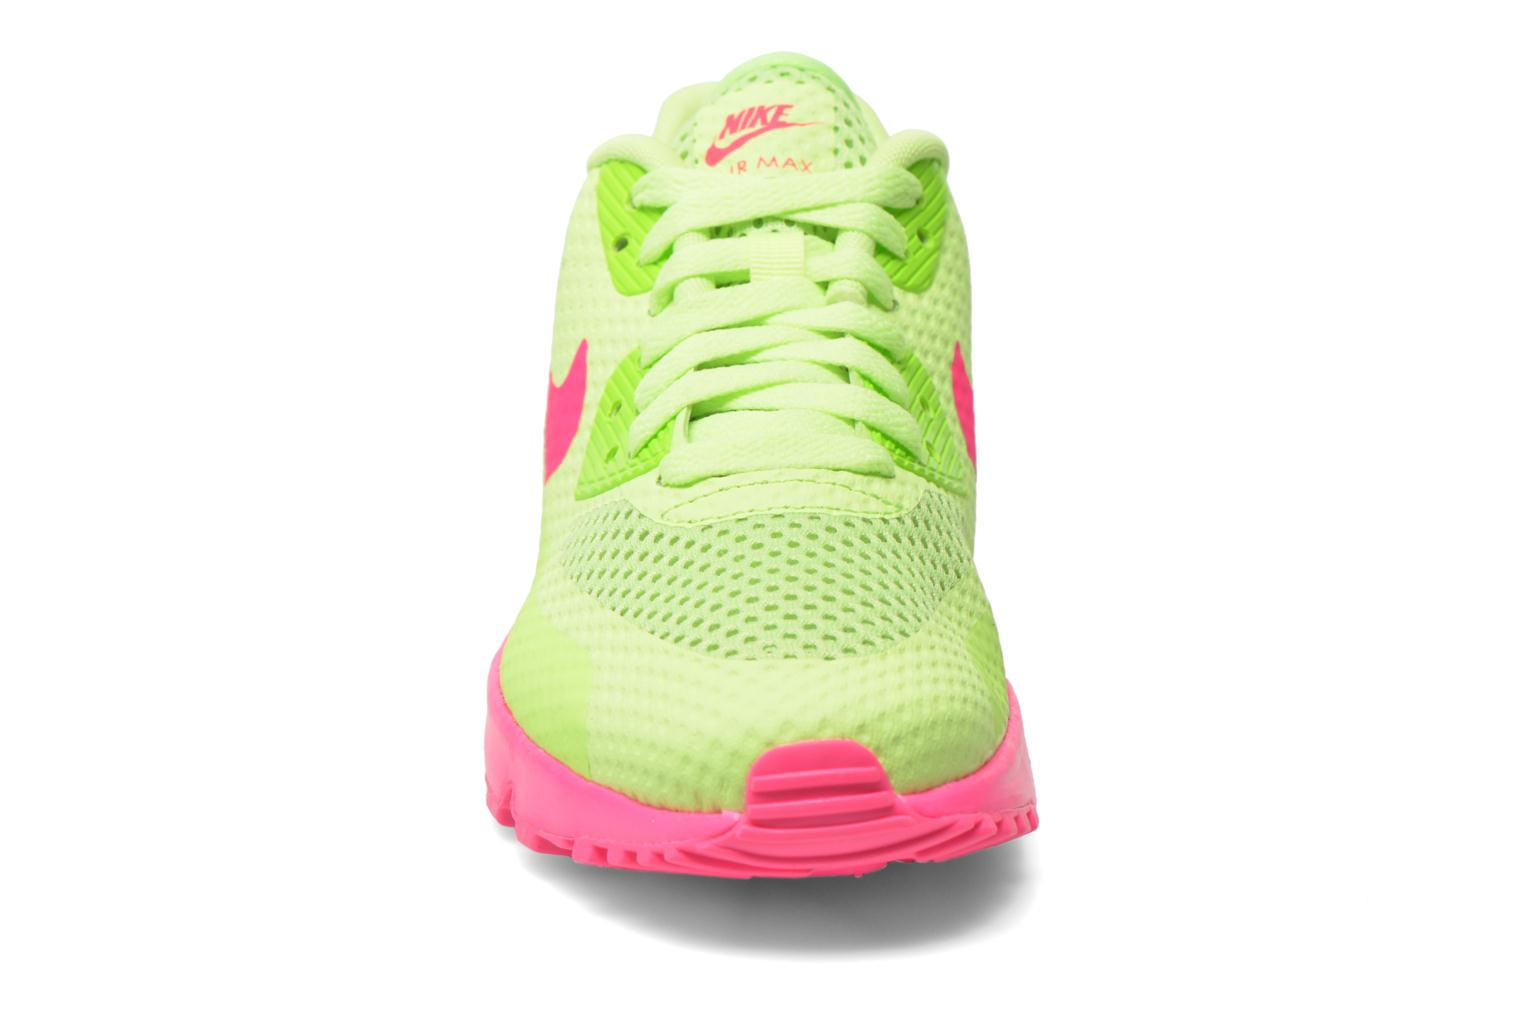 Nike Air Max 90 Br (Gs) Ghost Green Pink Blast-Black